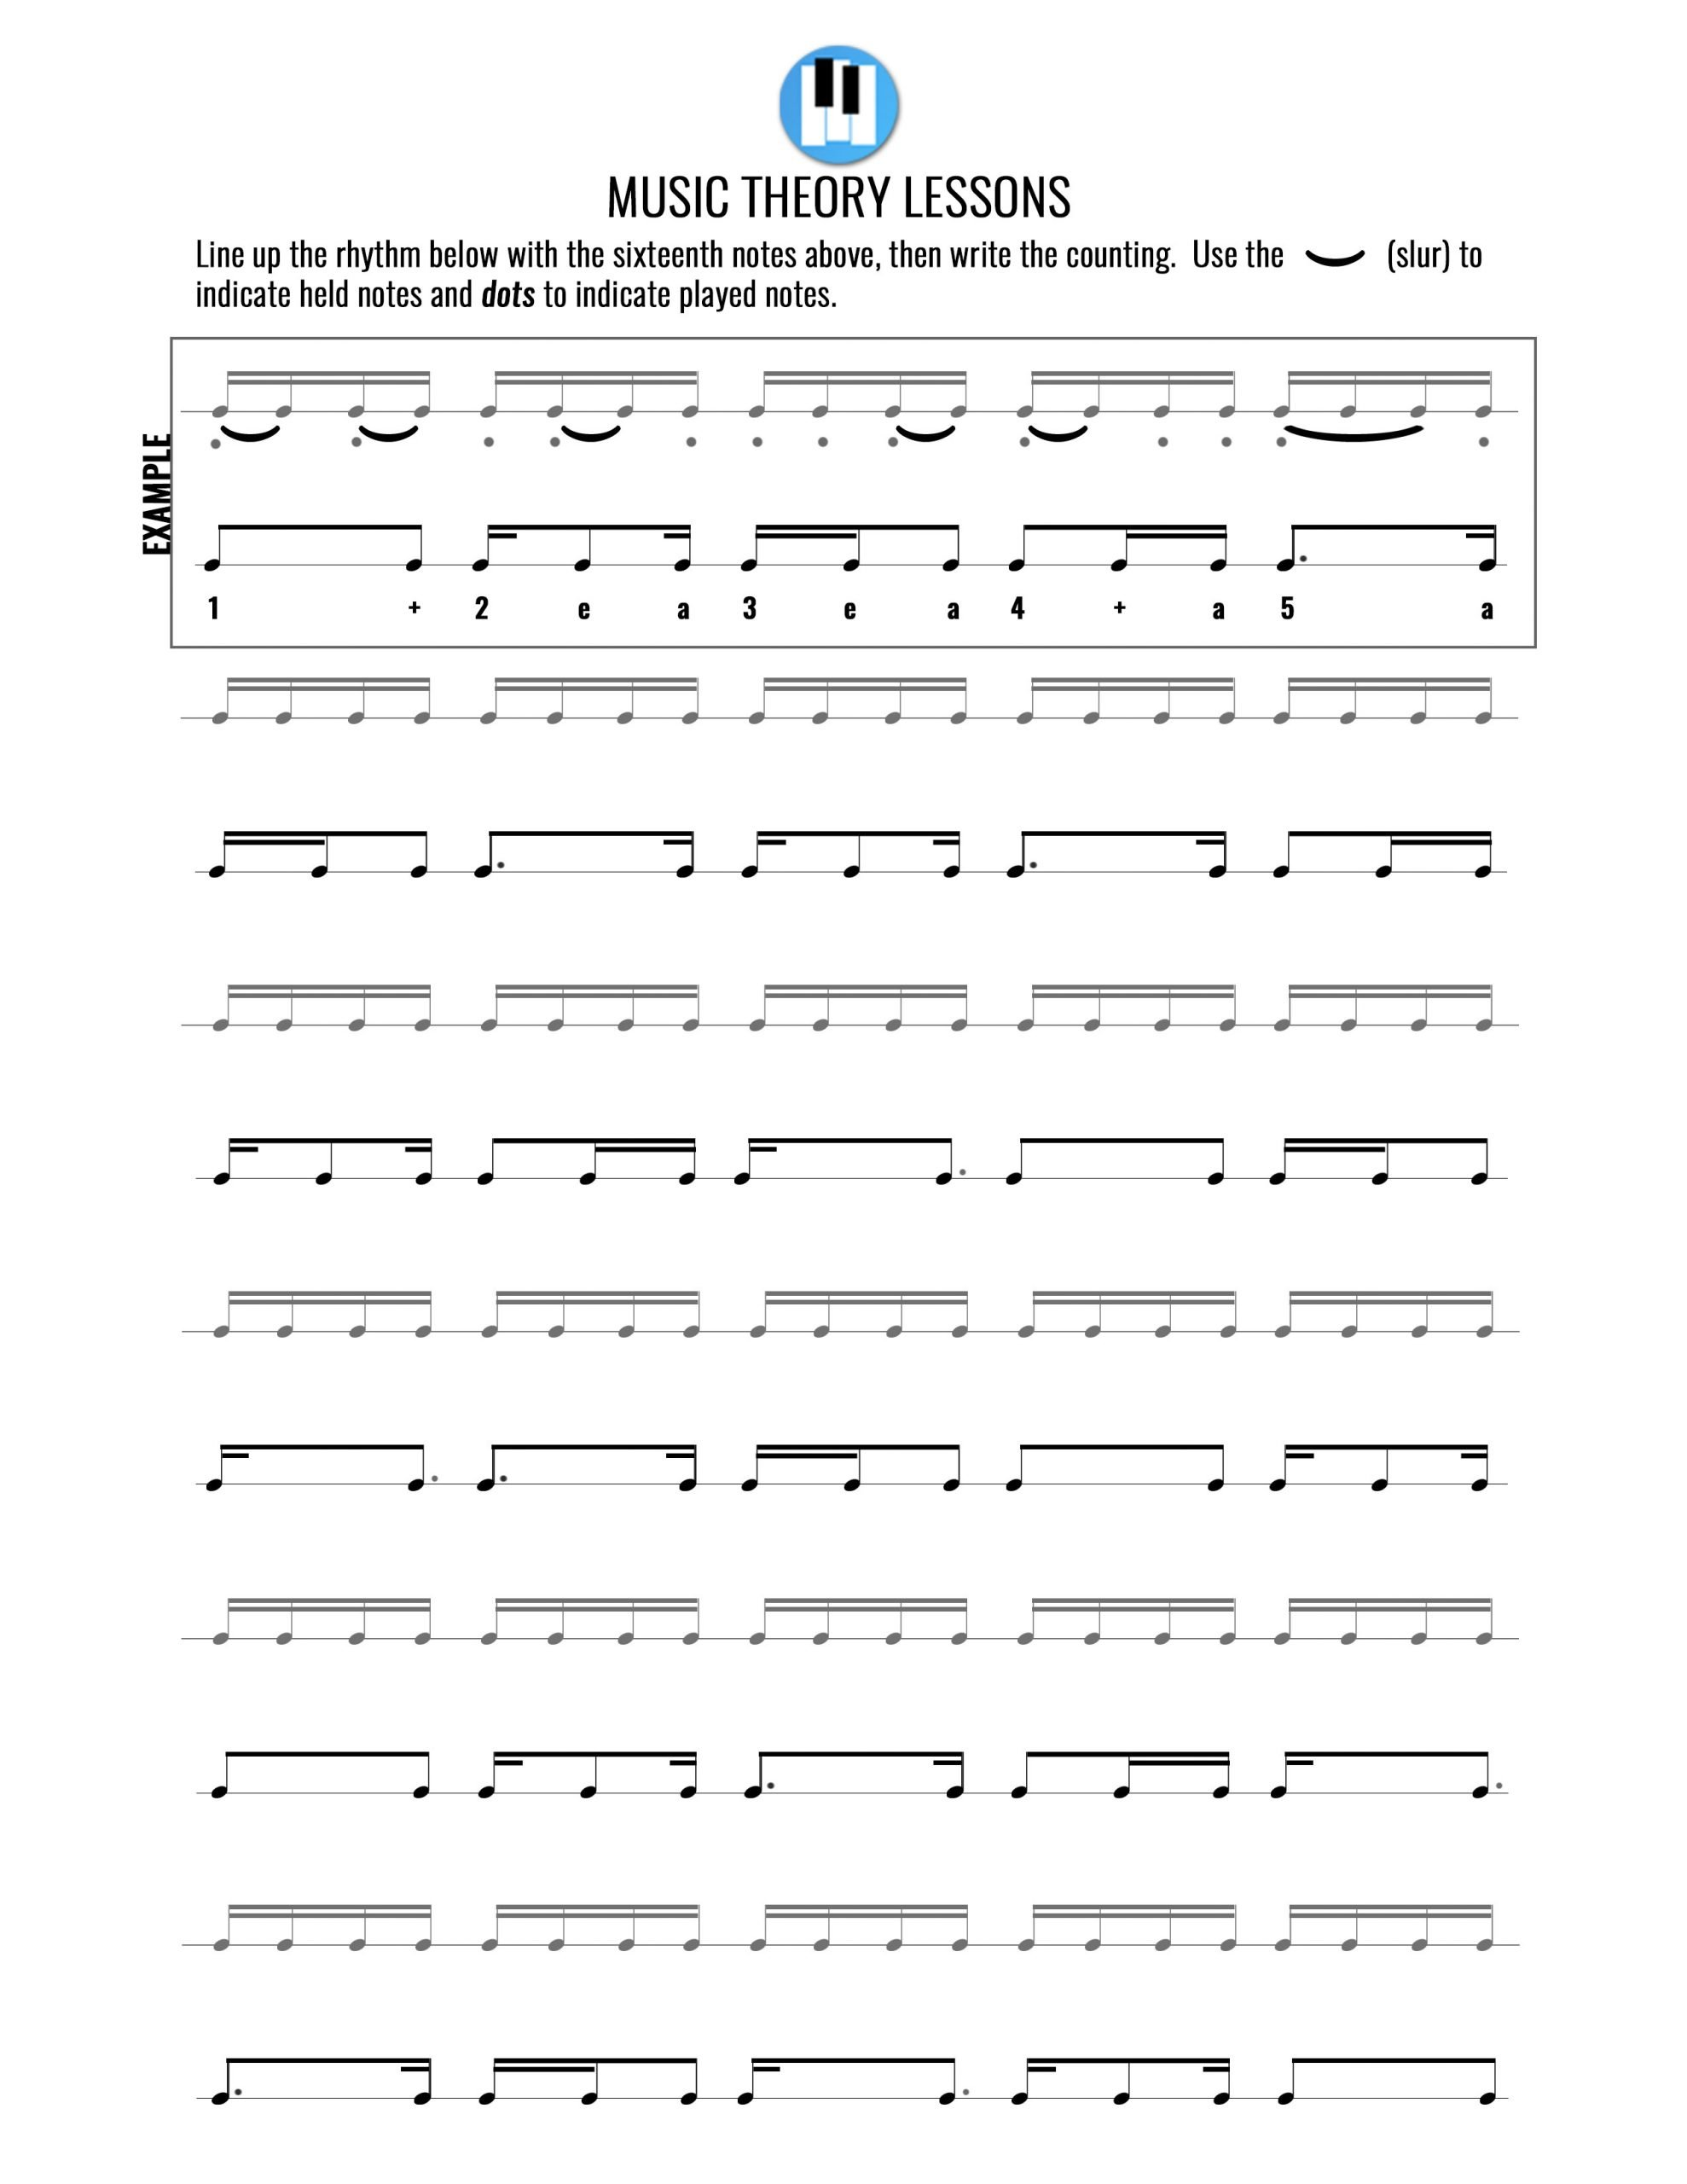 Rhythm Counting Worksheets Music theory Worksheets – Music theory Lessons